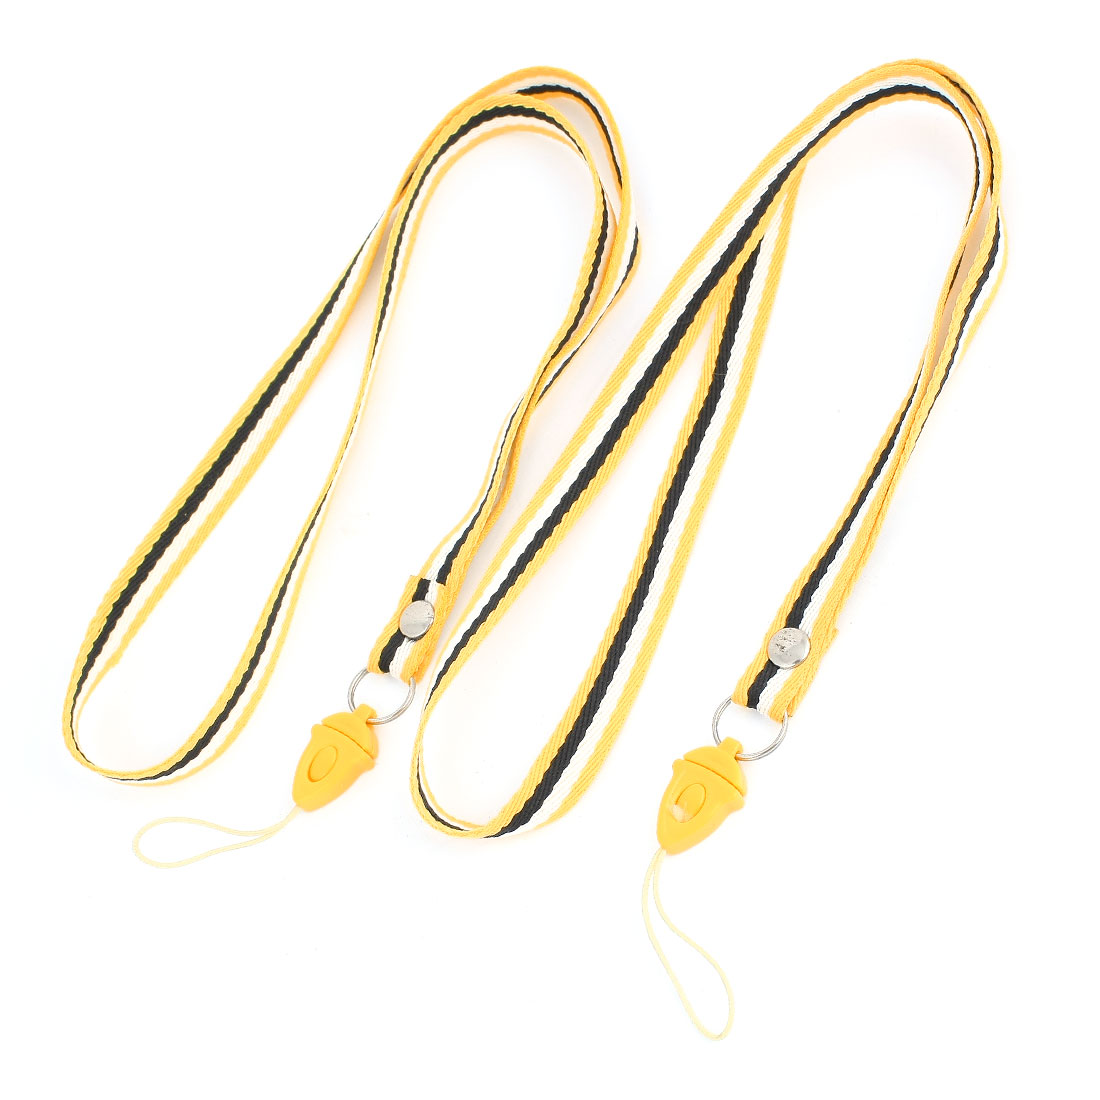 Work Card Stripe Print Phone Neck Cord Charm Strap Yellow White Black 2 Pcs